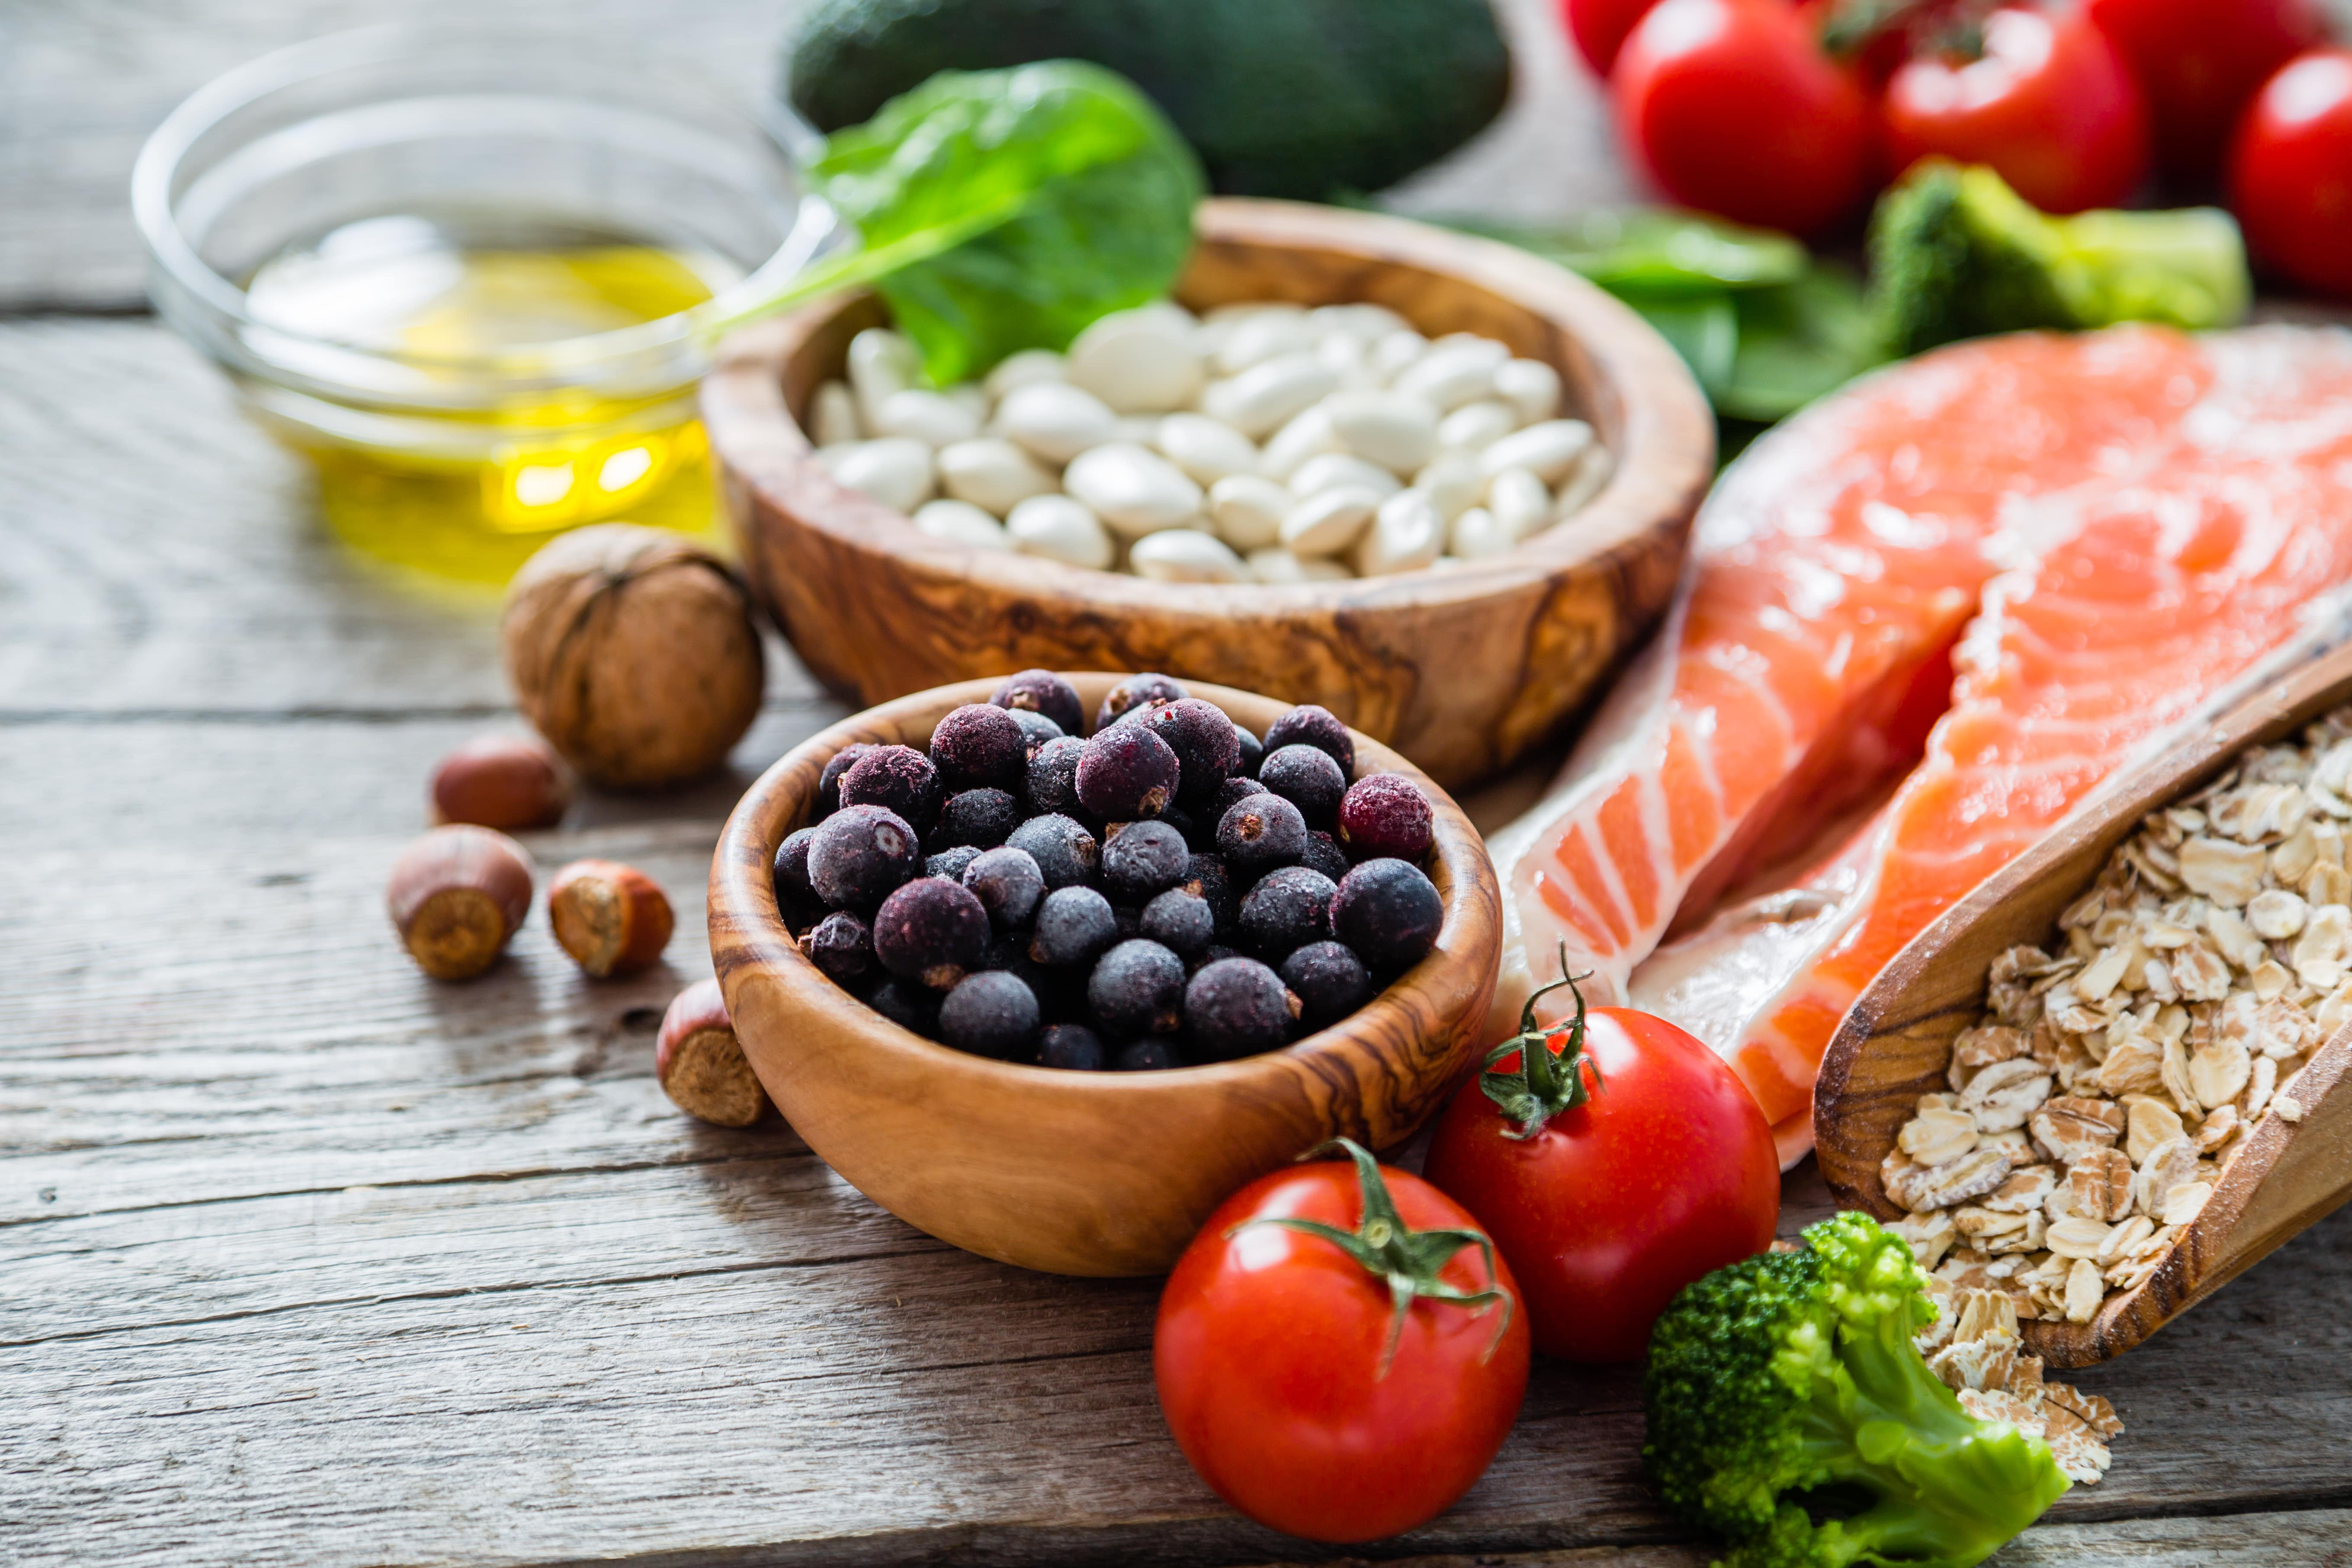 Image of various healthy foods sitting on a rustic wooden table